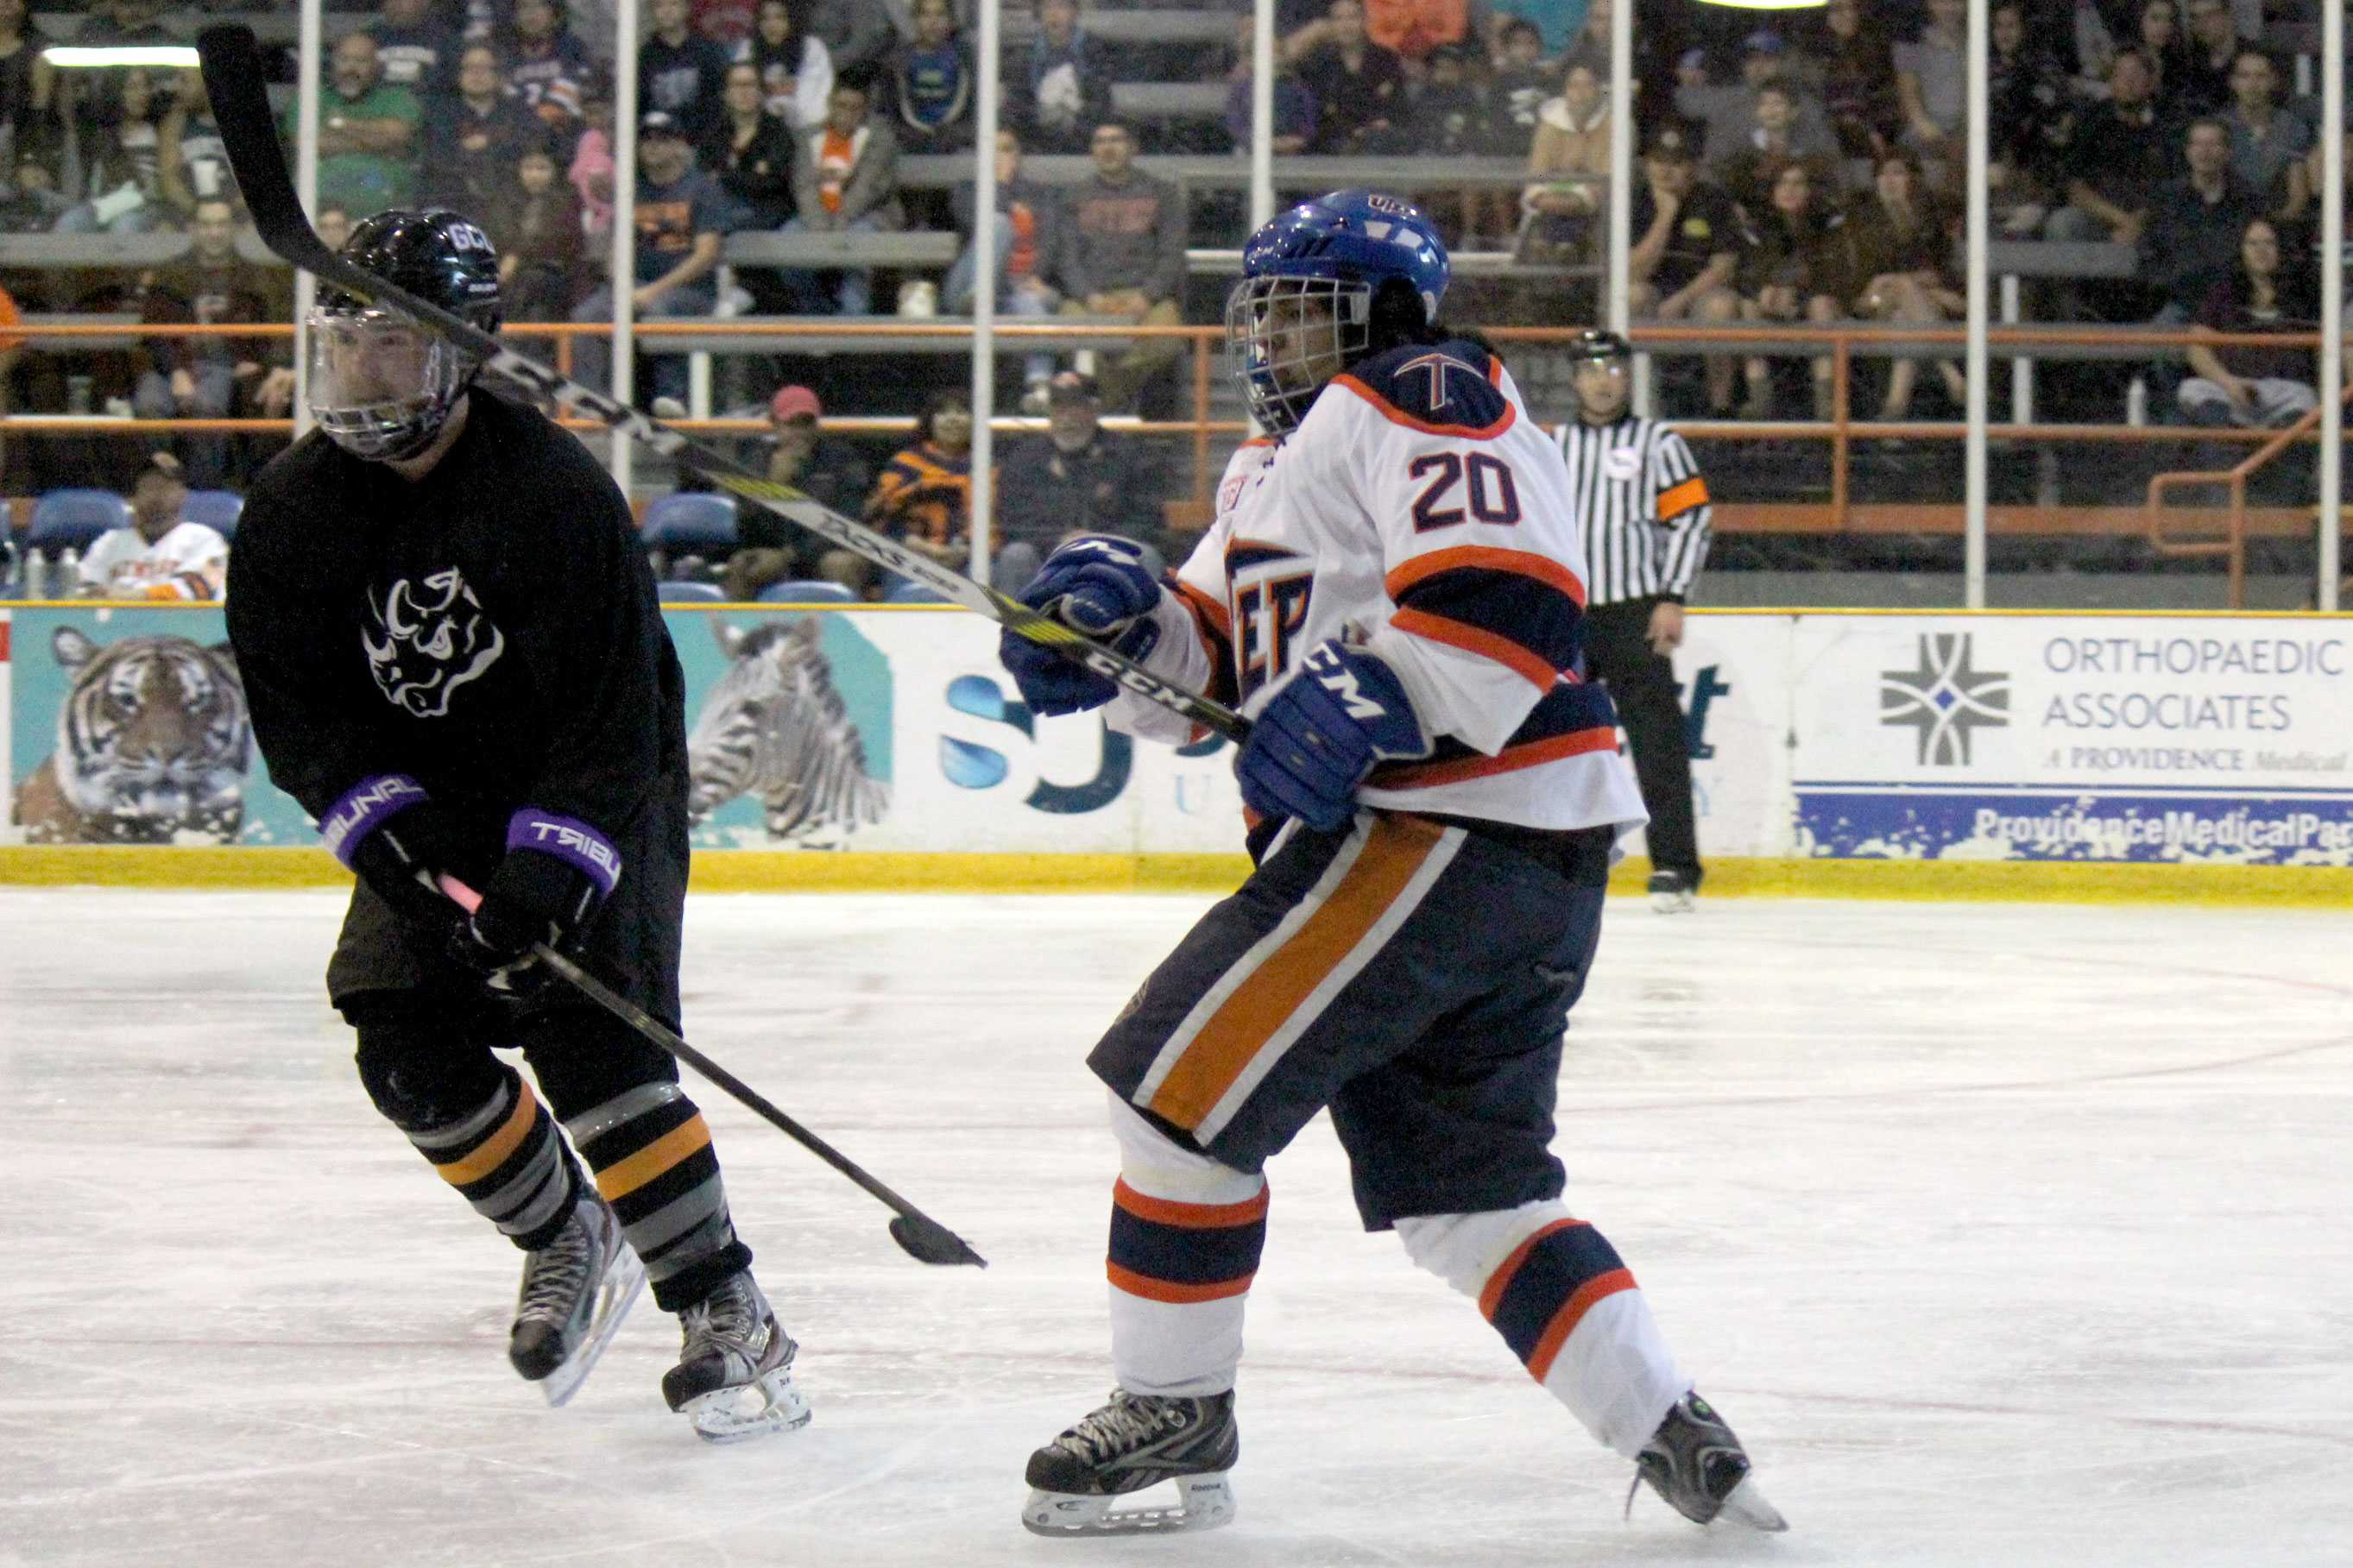 The Miner hockey club swept Grand Canyon University over the weekend, defeating them at home 7-3 and 4-2.